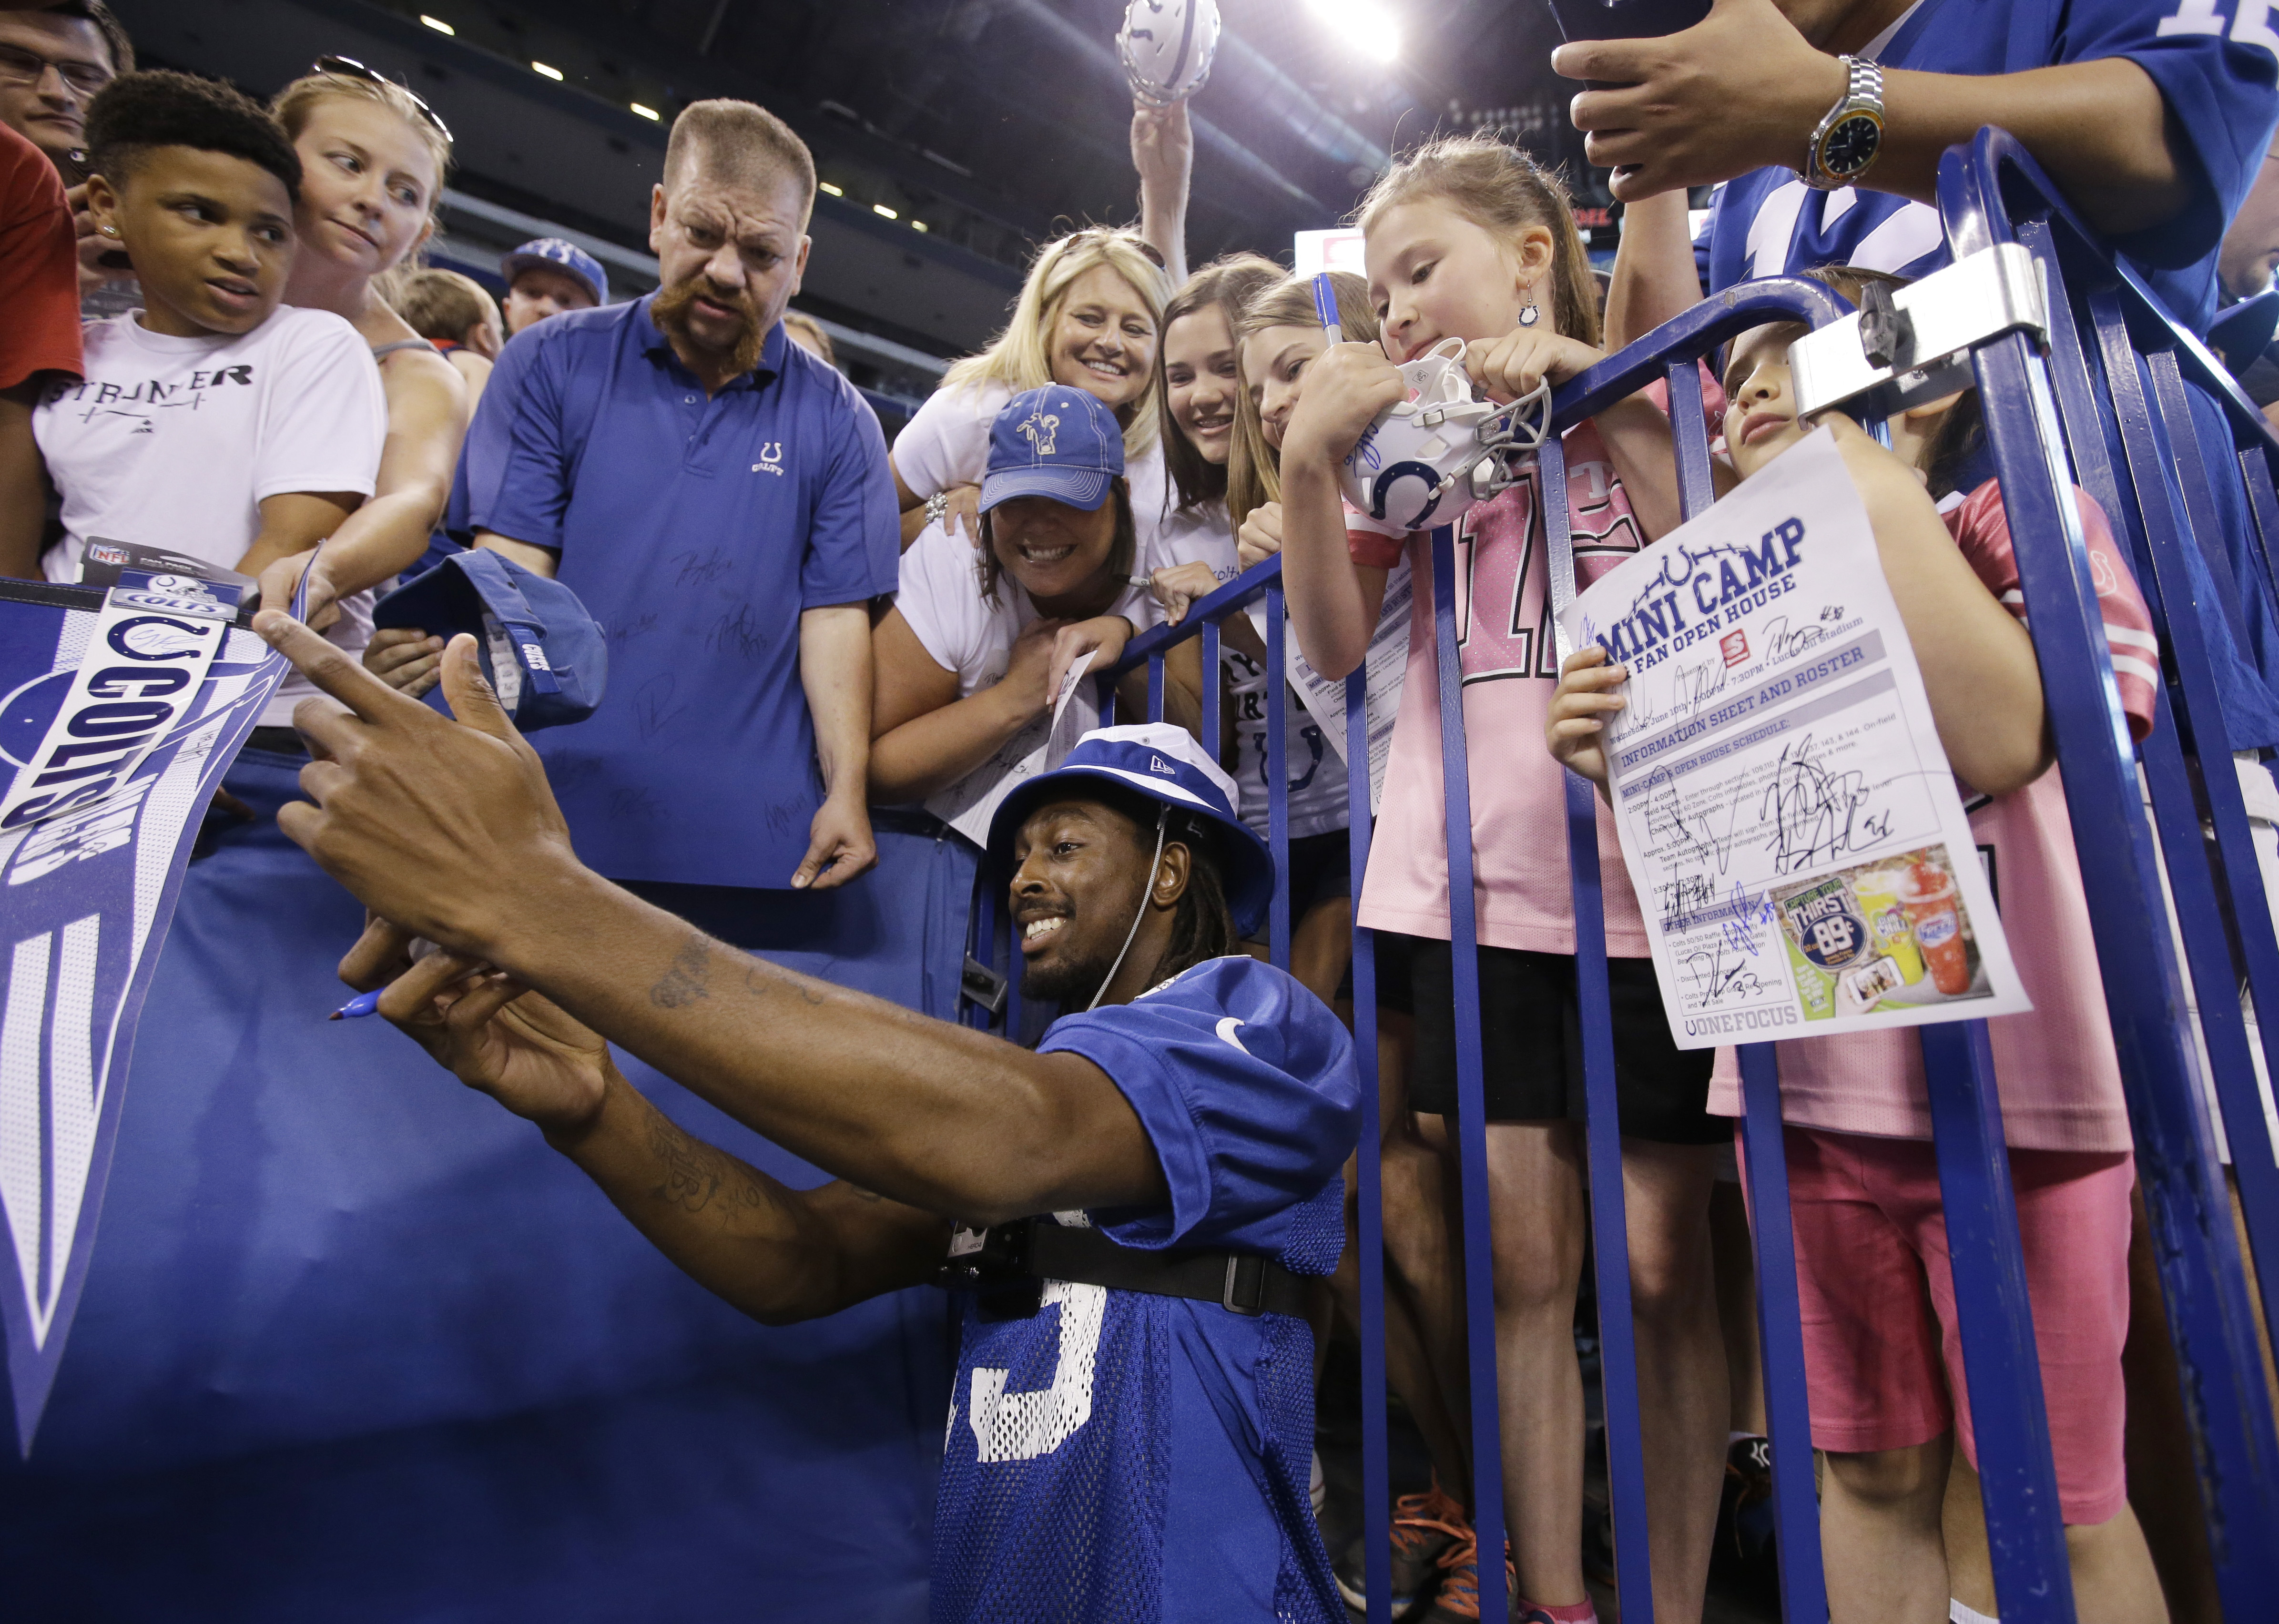 Indianapolis Colts' T.Y. Hilton takes a photo of himself with fans phone before an NFL football organized team activity at Lucas Oil Stadium Wednesday, June 10, 2015, in Indianapolis. (AP Photo/Darron Cummings)